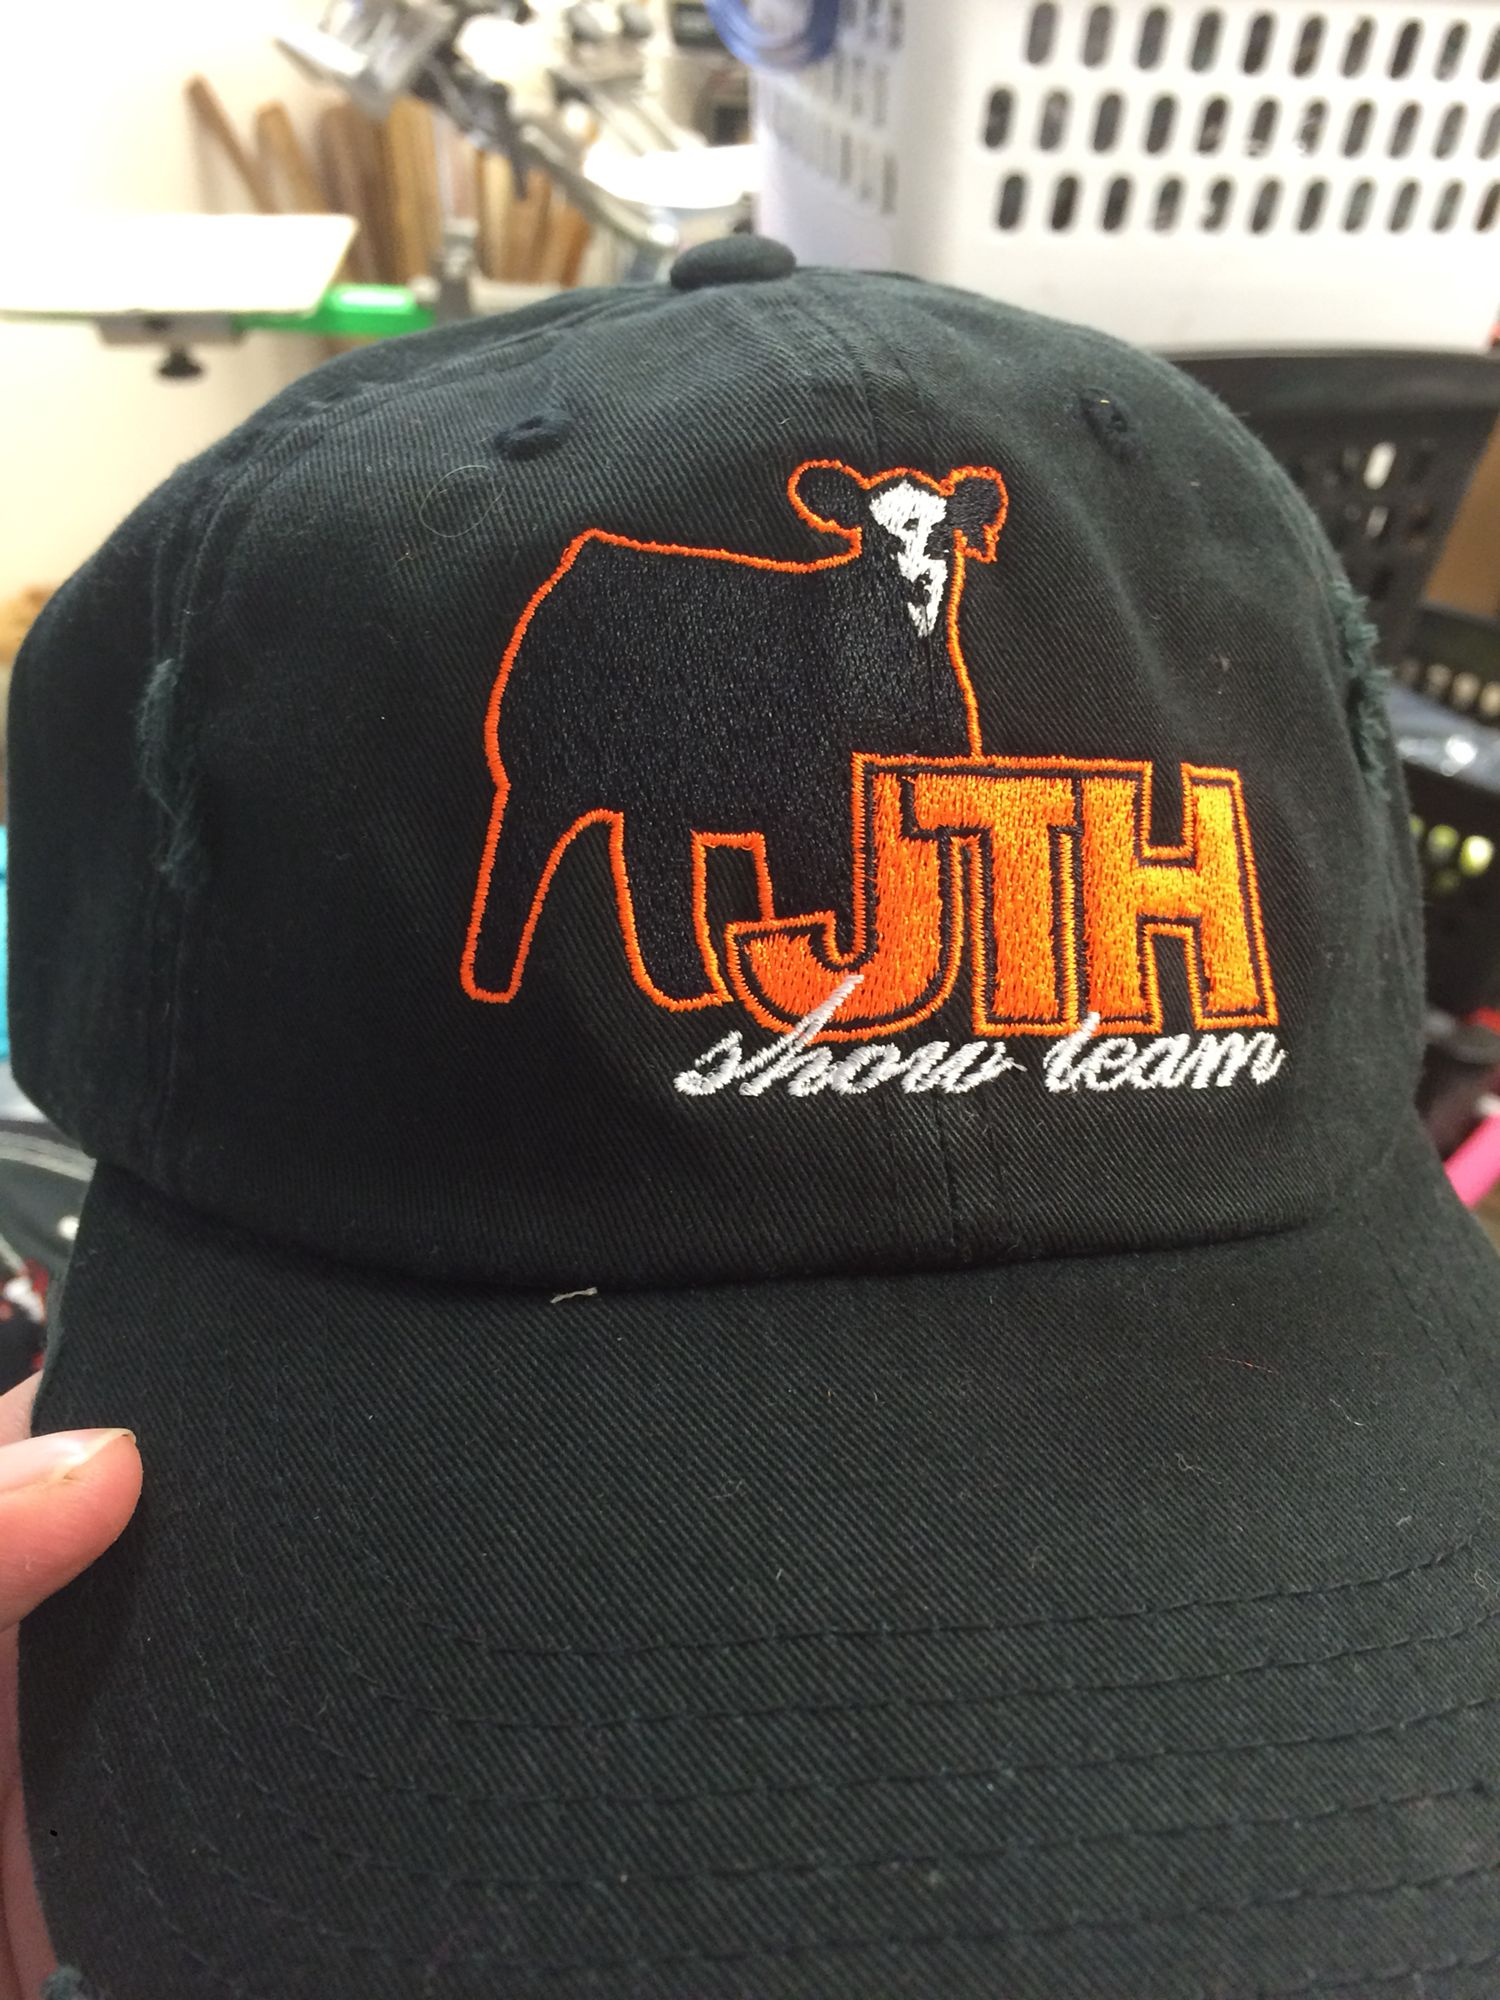 a21e8a85263ea5 Show cattle custom caps. This one with a fantastic logo from Mittag design.